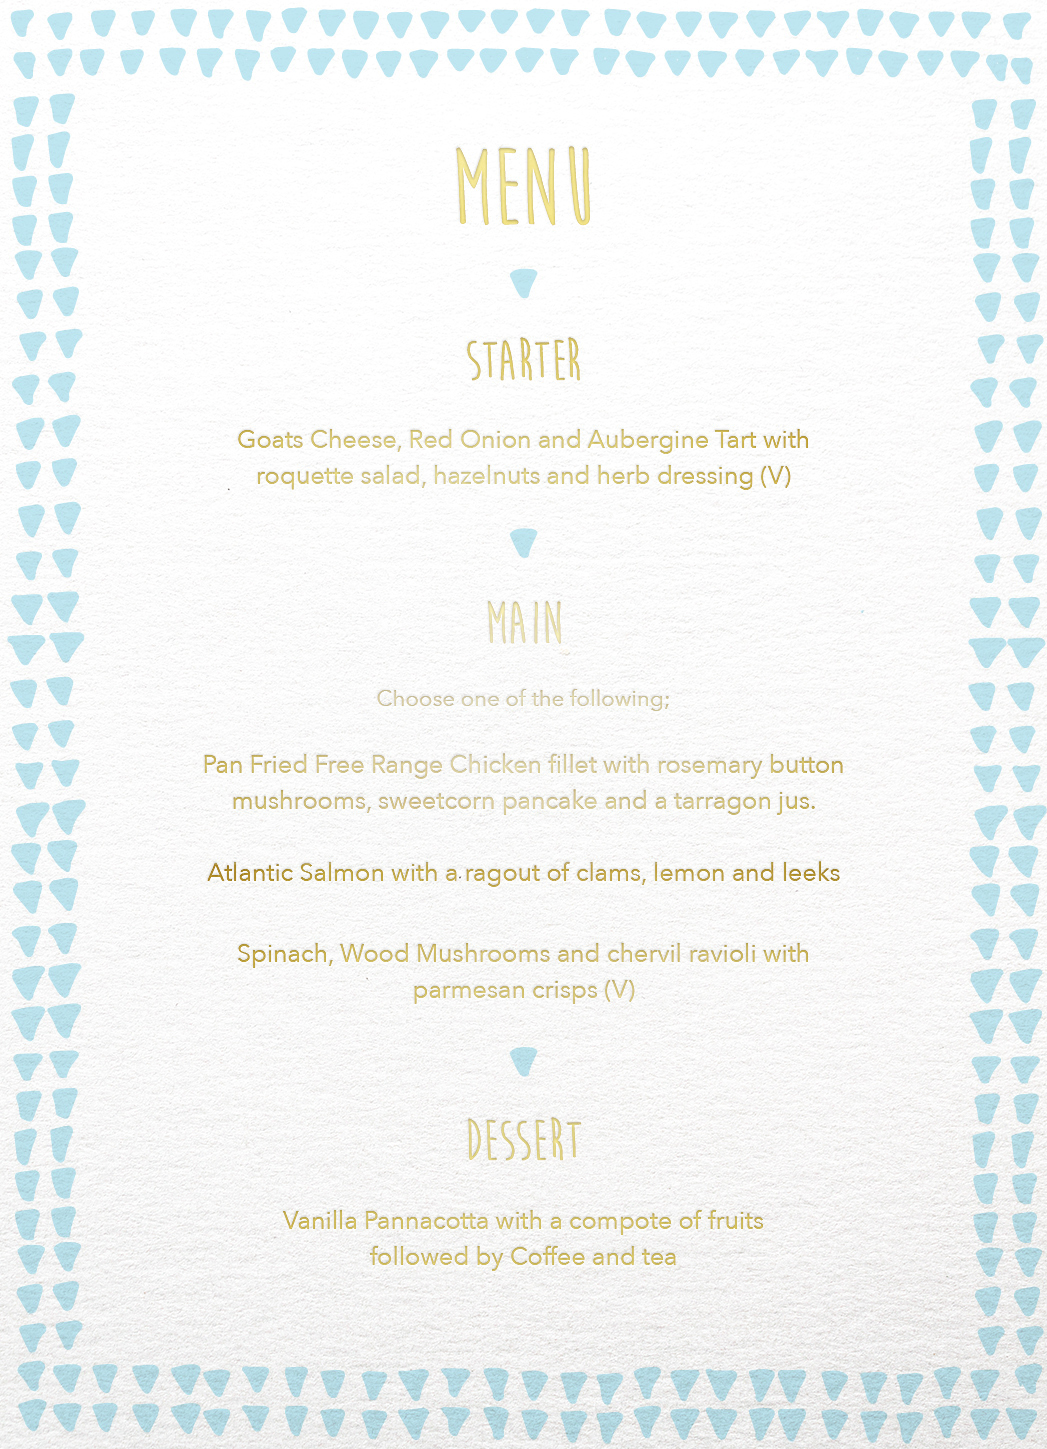 Droplets - Menu Card